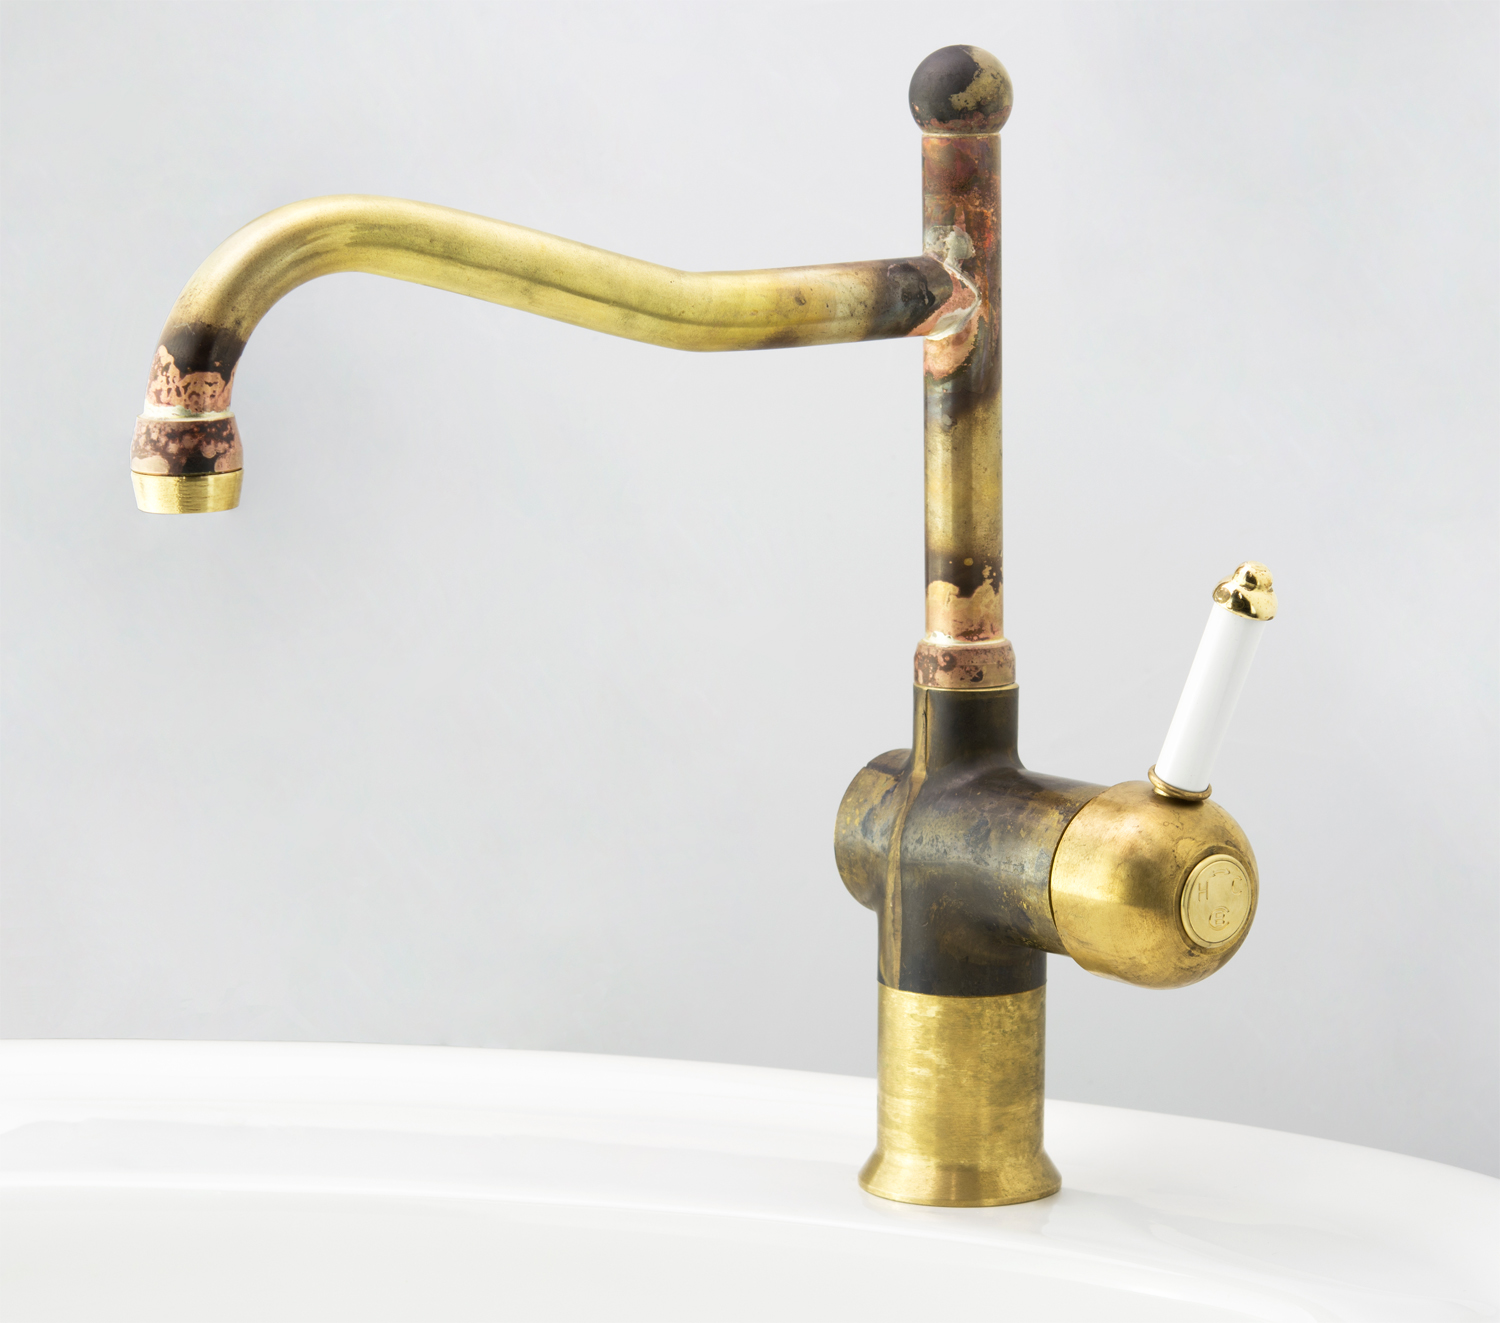 Roulette Lever Flick Mixer with Sink Olde Adelaide Outlet in Raw Brass with White Lever Insert and Engraved Button Upgrade